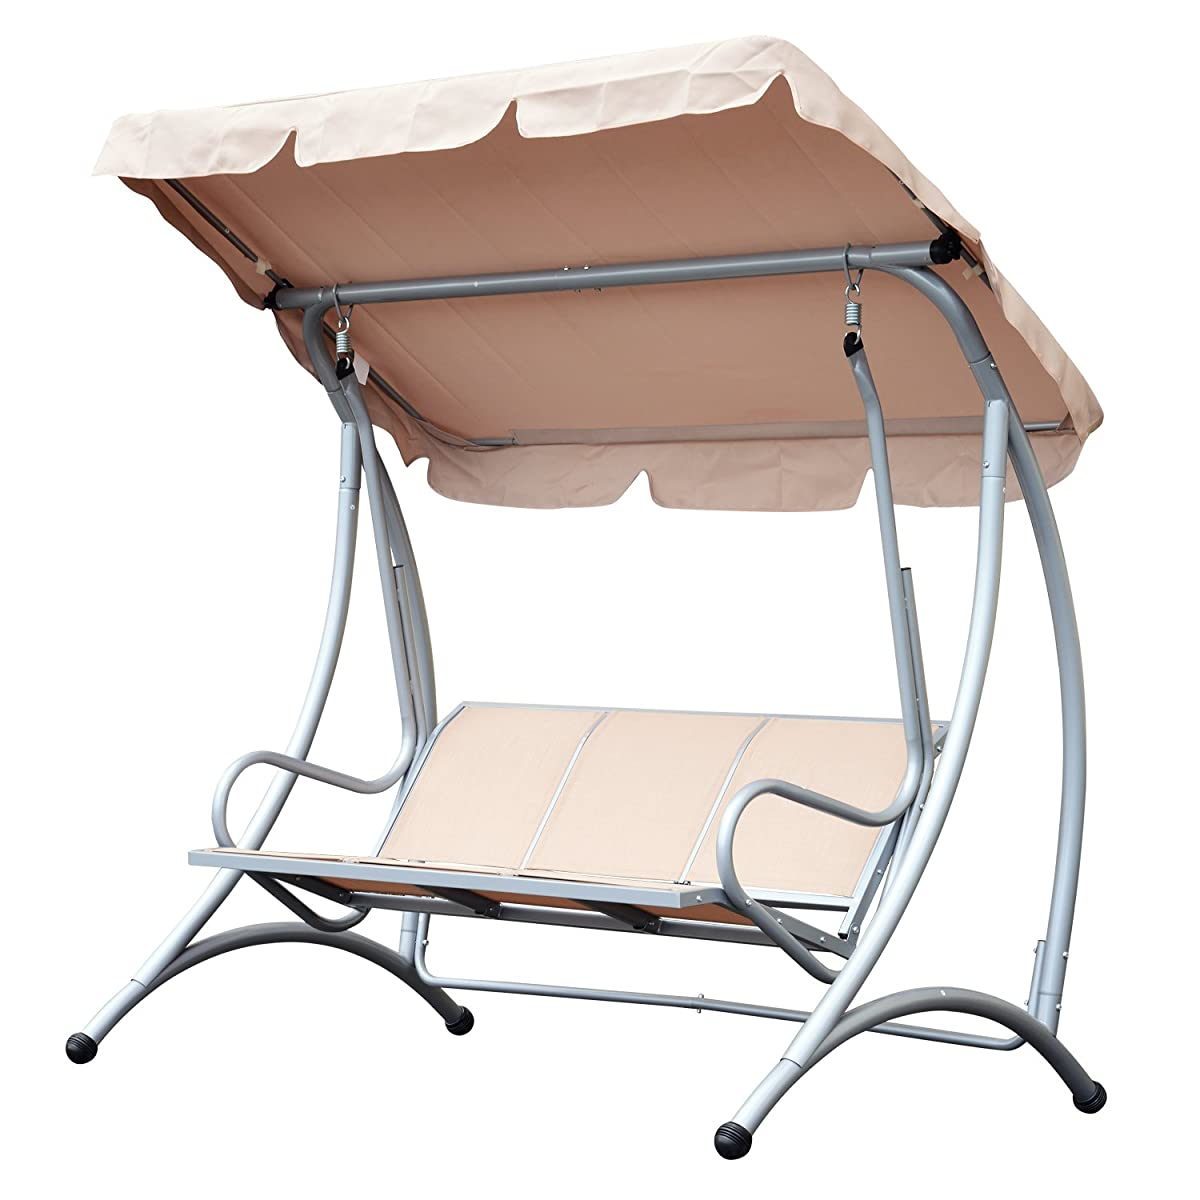 Outsunny Sling Fabric 3 Person Steel Outdoor Patio Porch Swing Chair with Adjustable Canopy Lawn -Beige